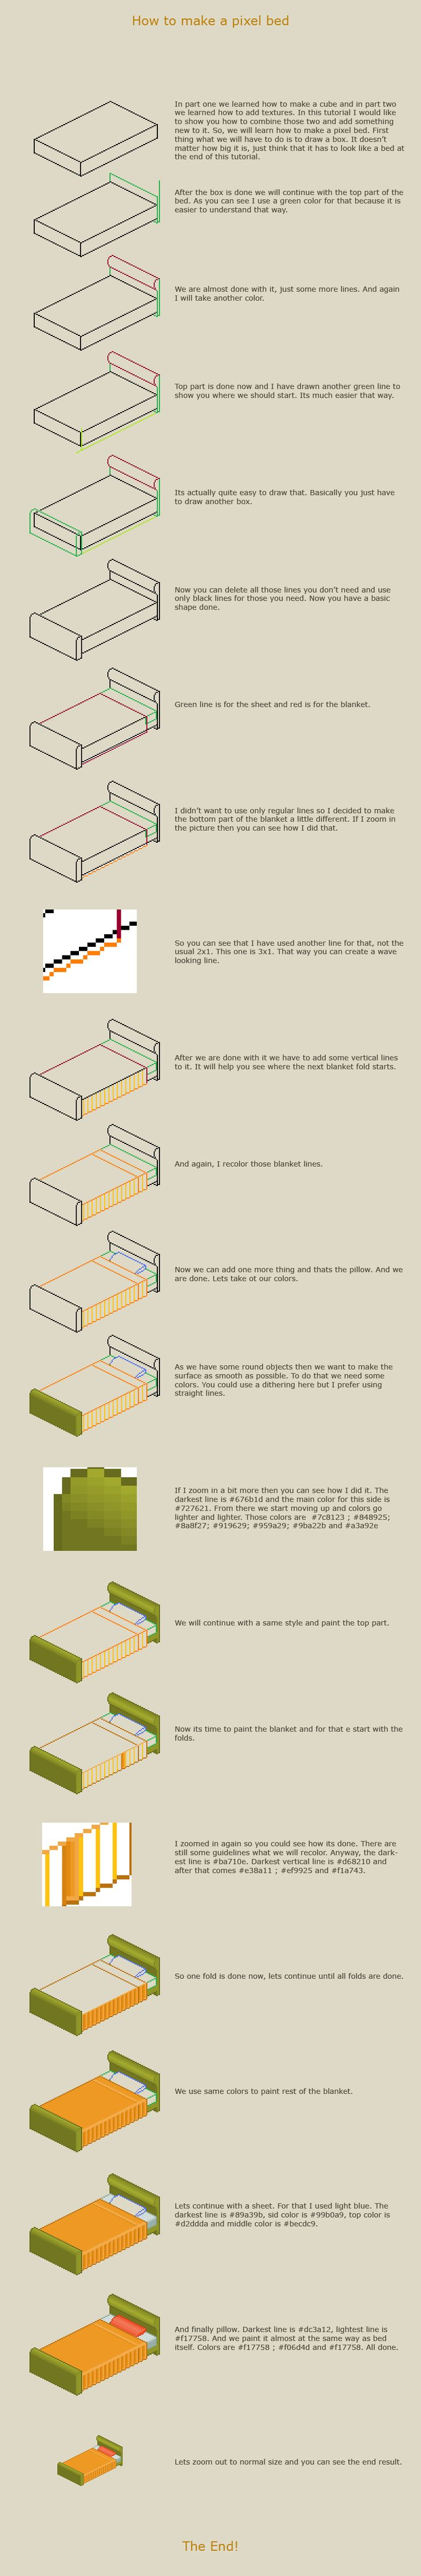 How to make a pixel bed by vanmall.deviantart.com on @deviantART